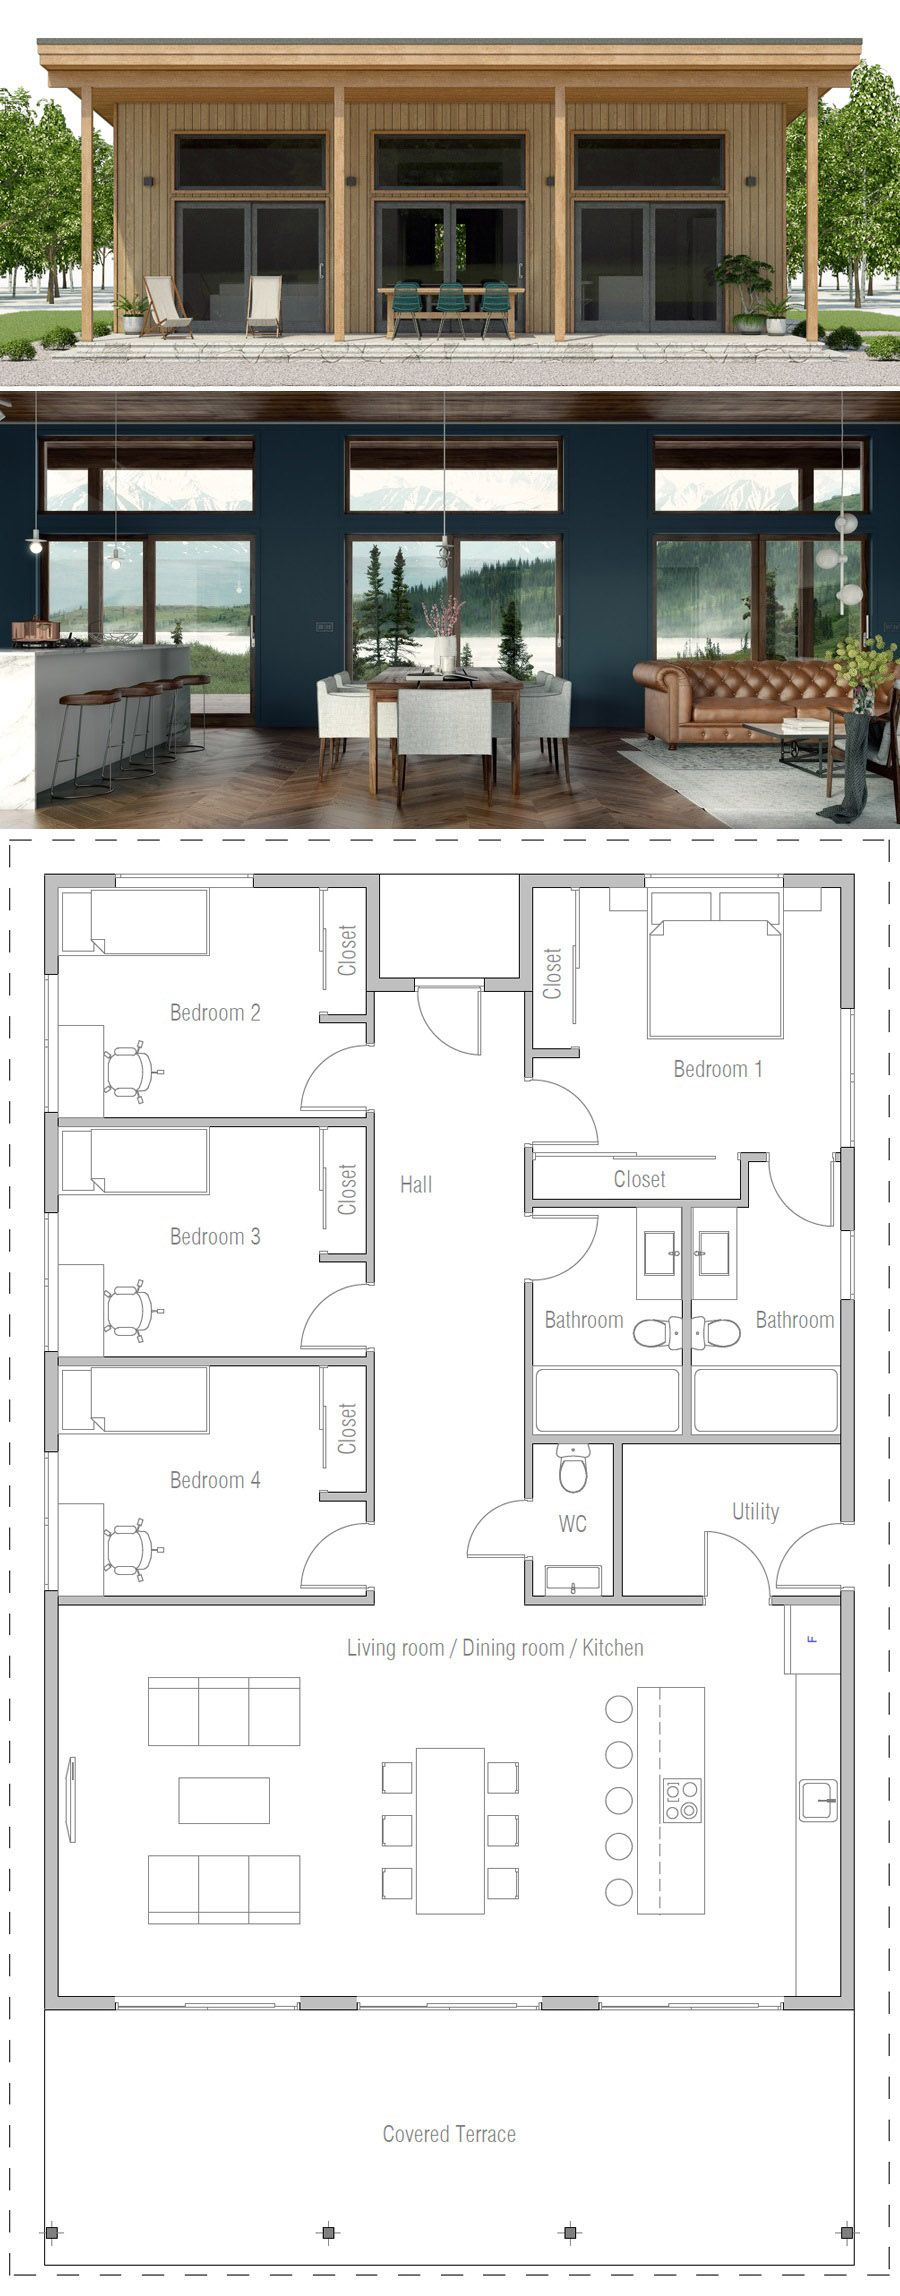 Narrow Home Plans modernhomedecor Narrow Home Plans